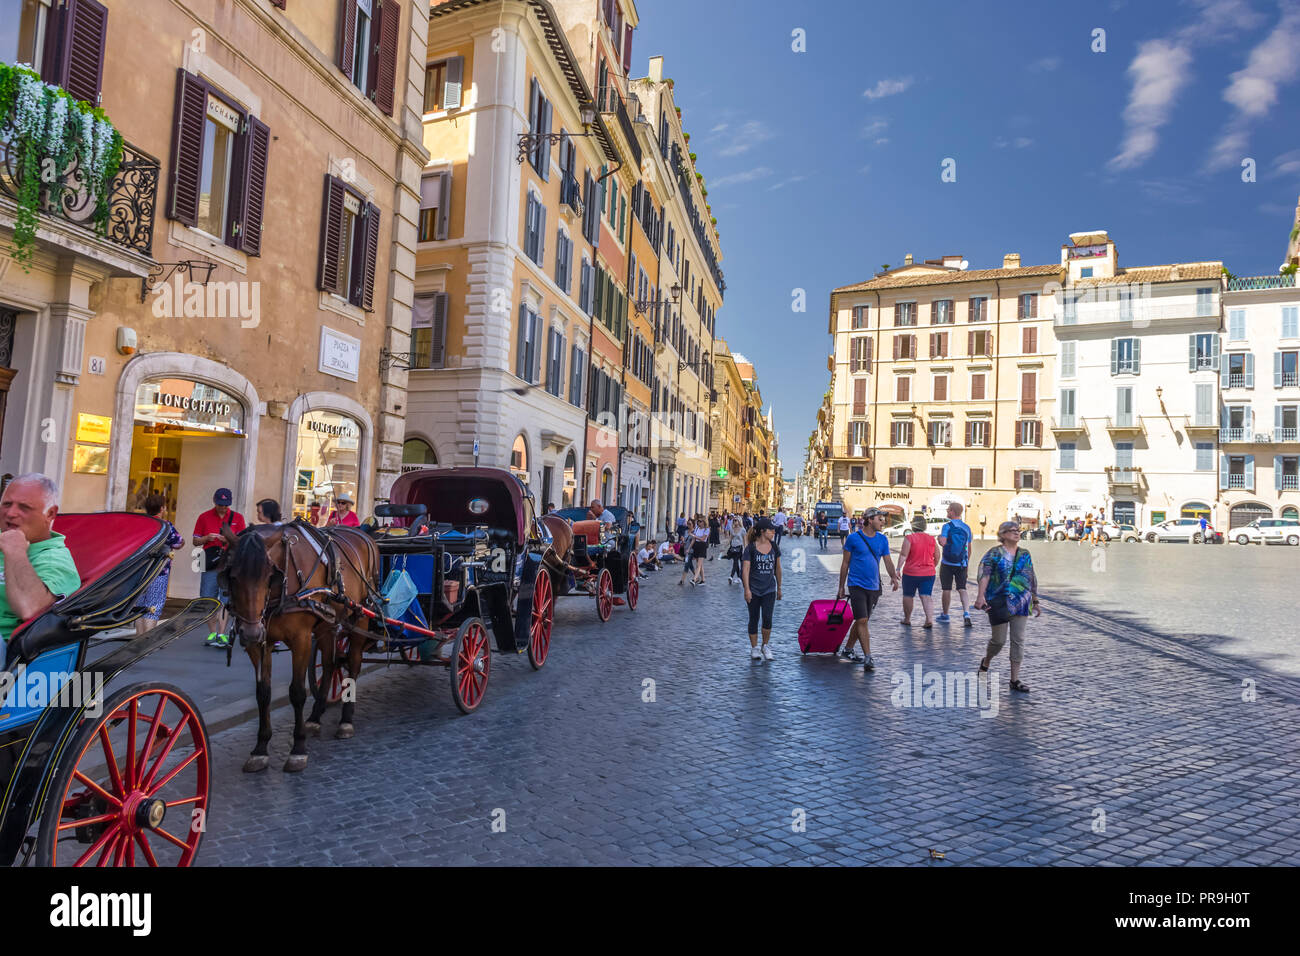 Rome/Italy - August 27, 2018: Piazza di Spagna with horse-waggons and tourists - Stock Image